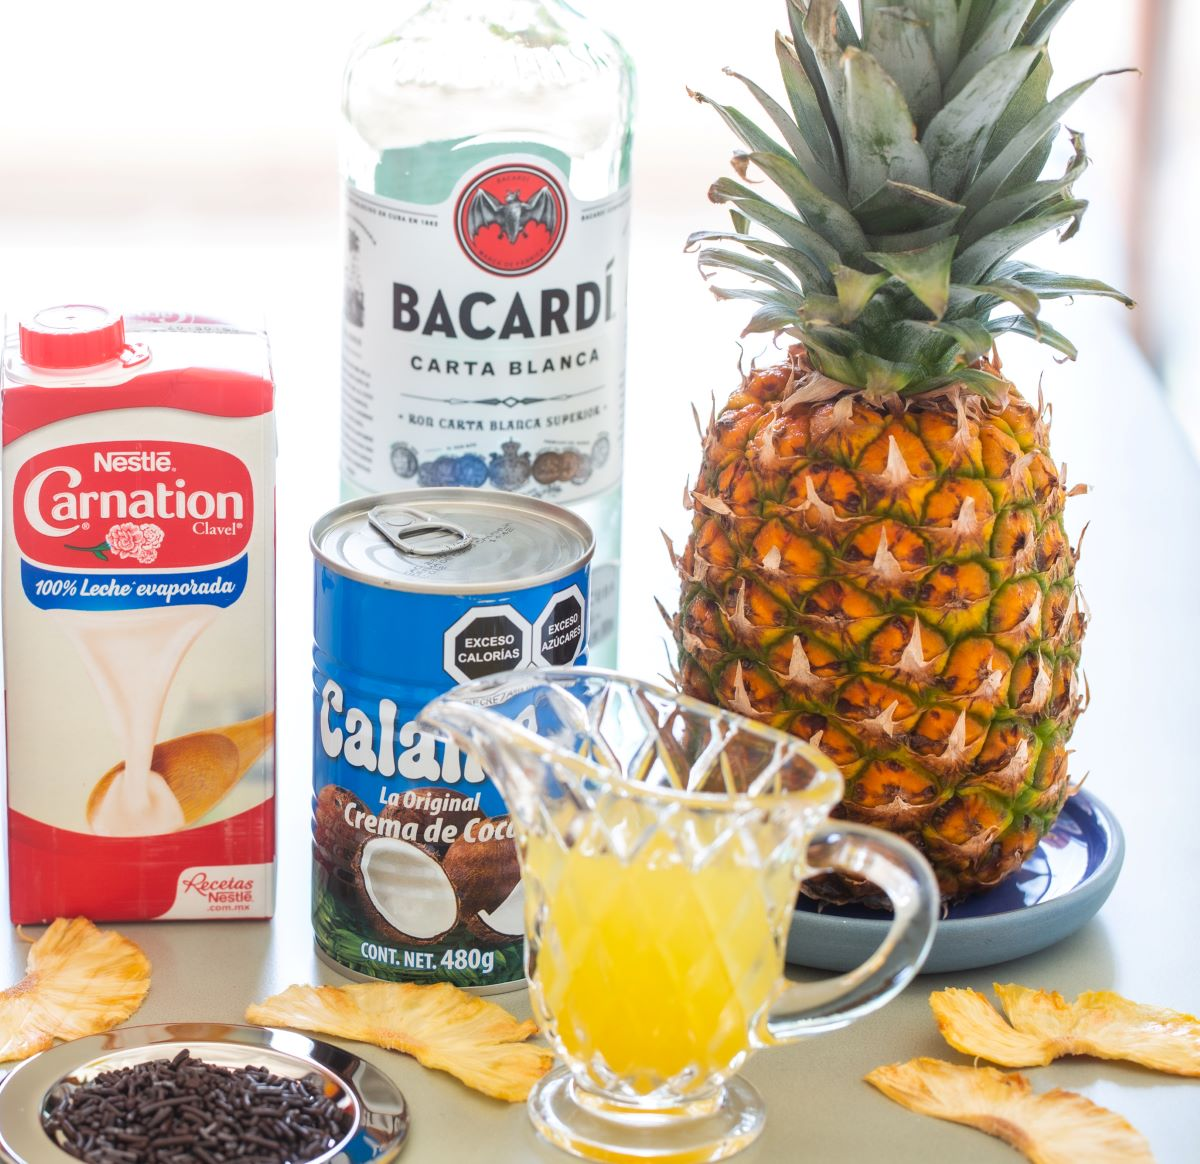 Ingredients used in the Best Pina Colada Recipe.